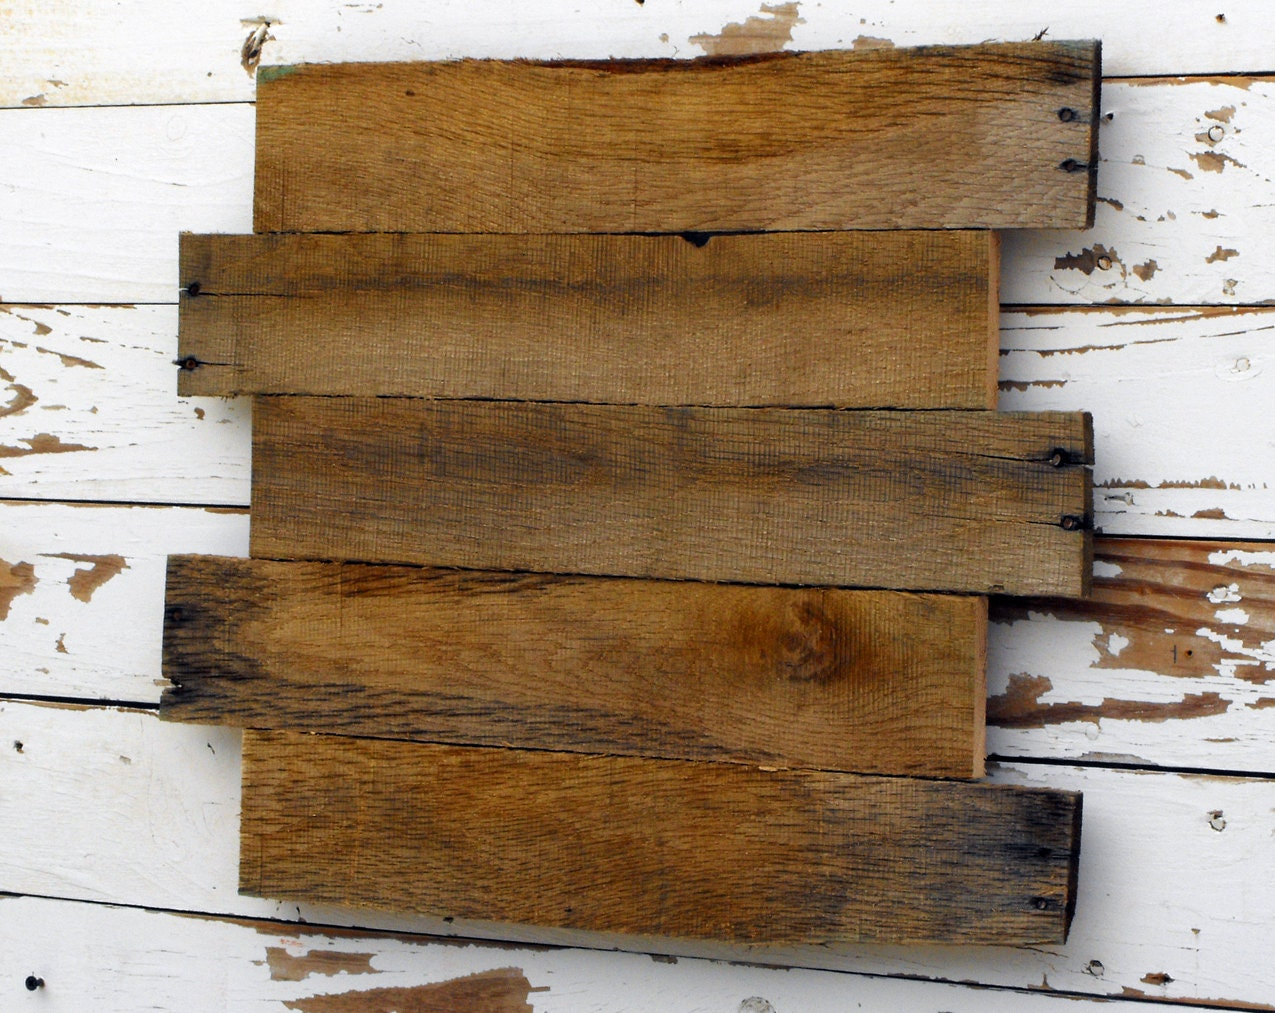 Blank Pallet Wood Canvas for Your Sign or Painting Project.